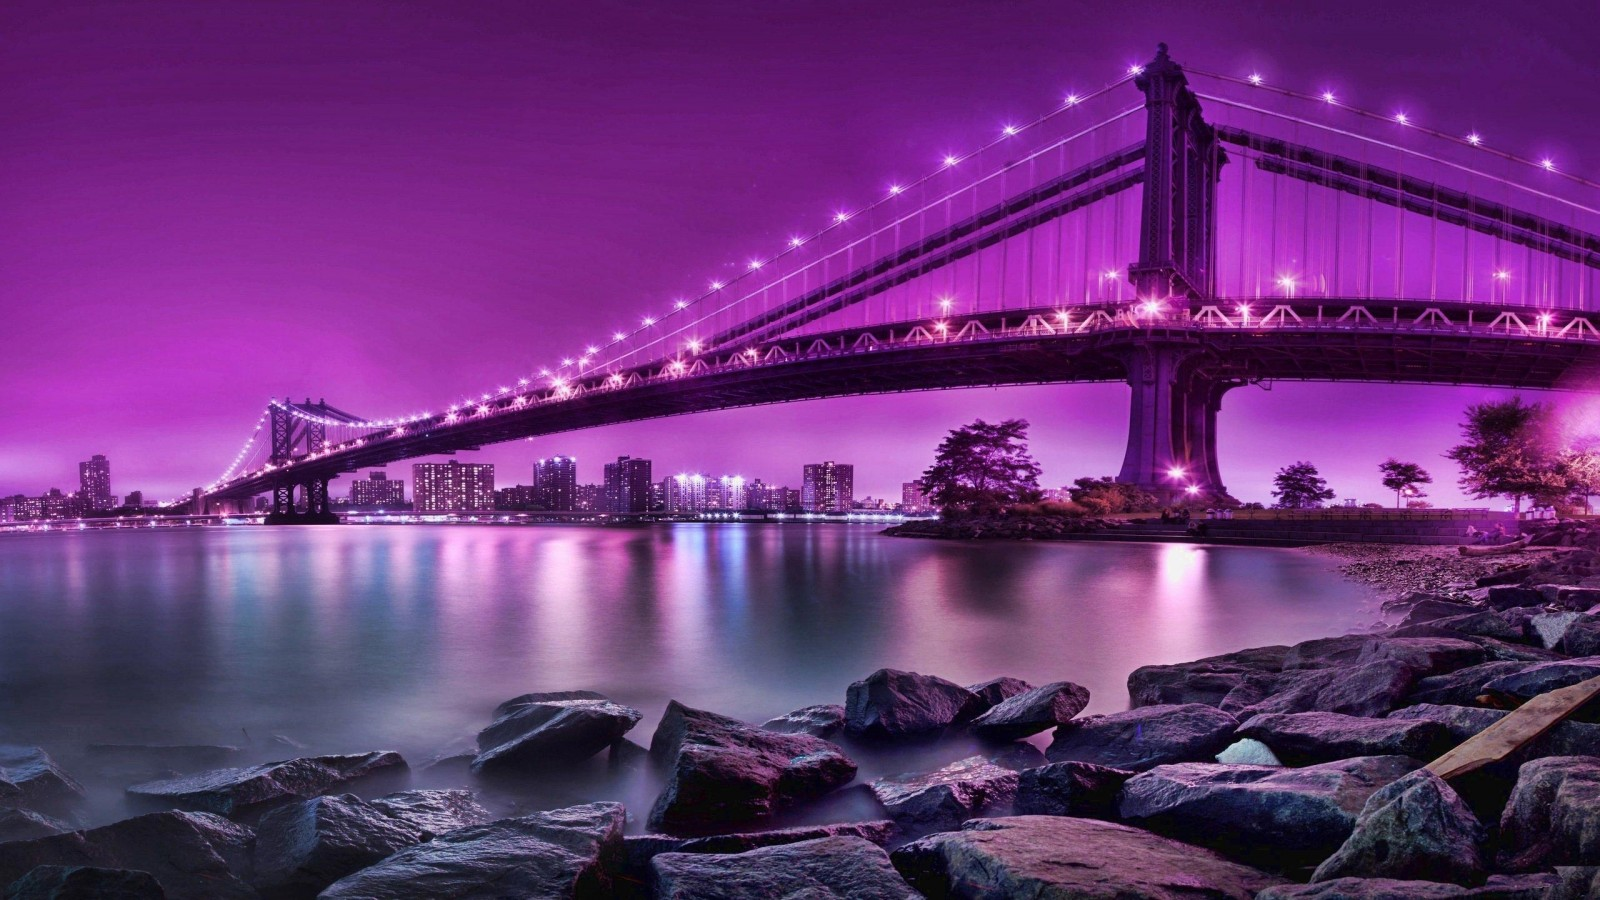 Cool HD Wallpapers Collection of Bridge - 1600x900 px, September 30, 2014